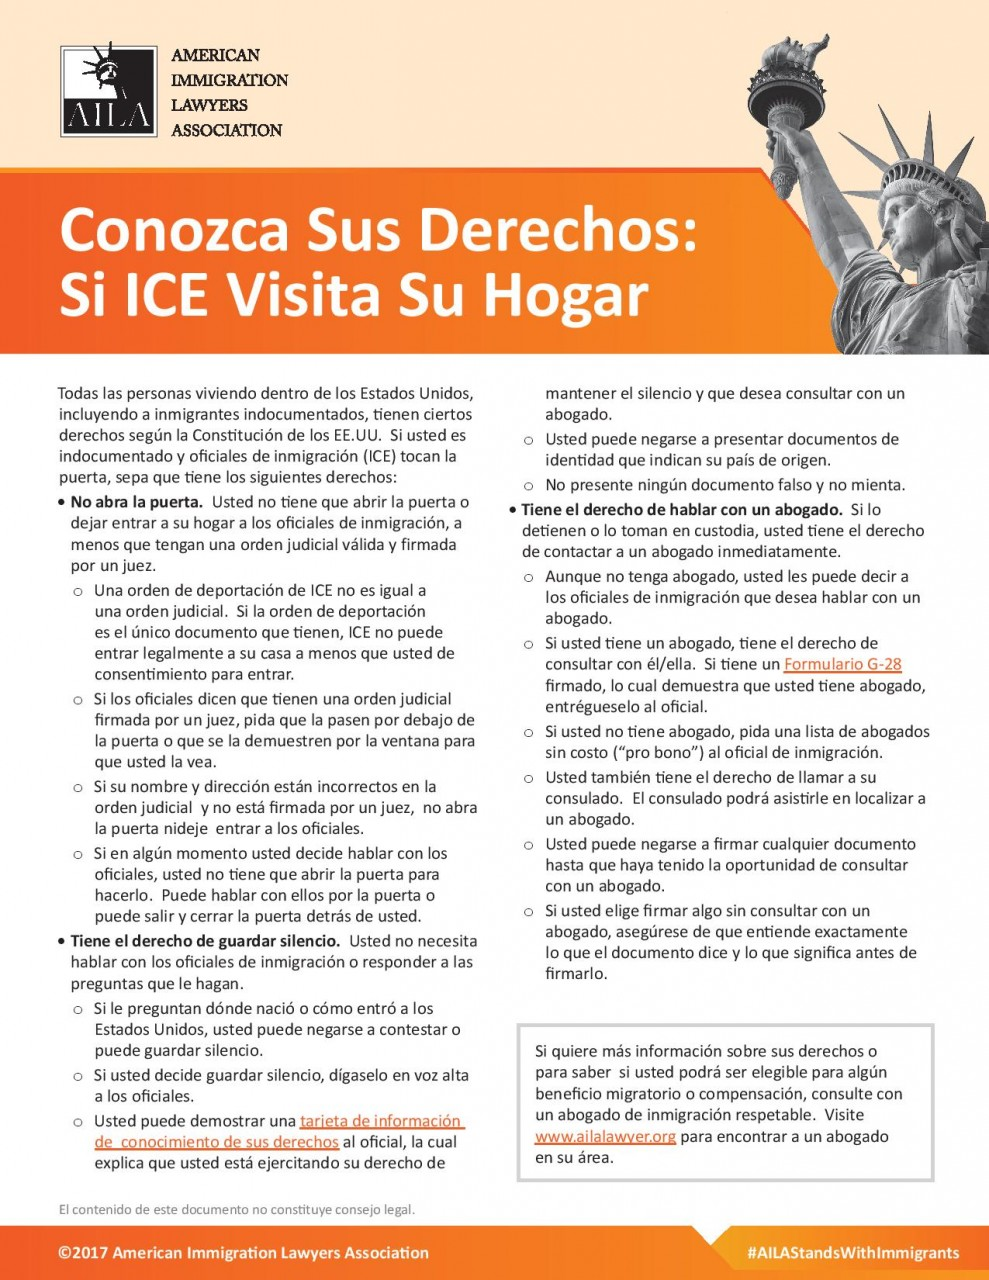 Potential ICE Raids: Know Your Rights